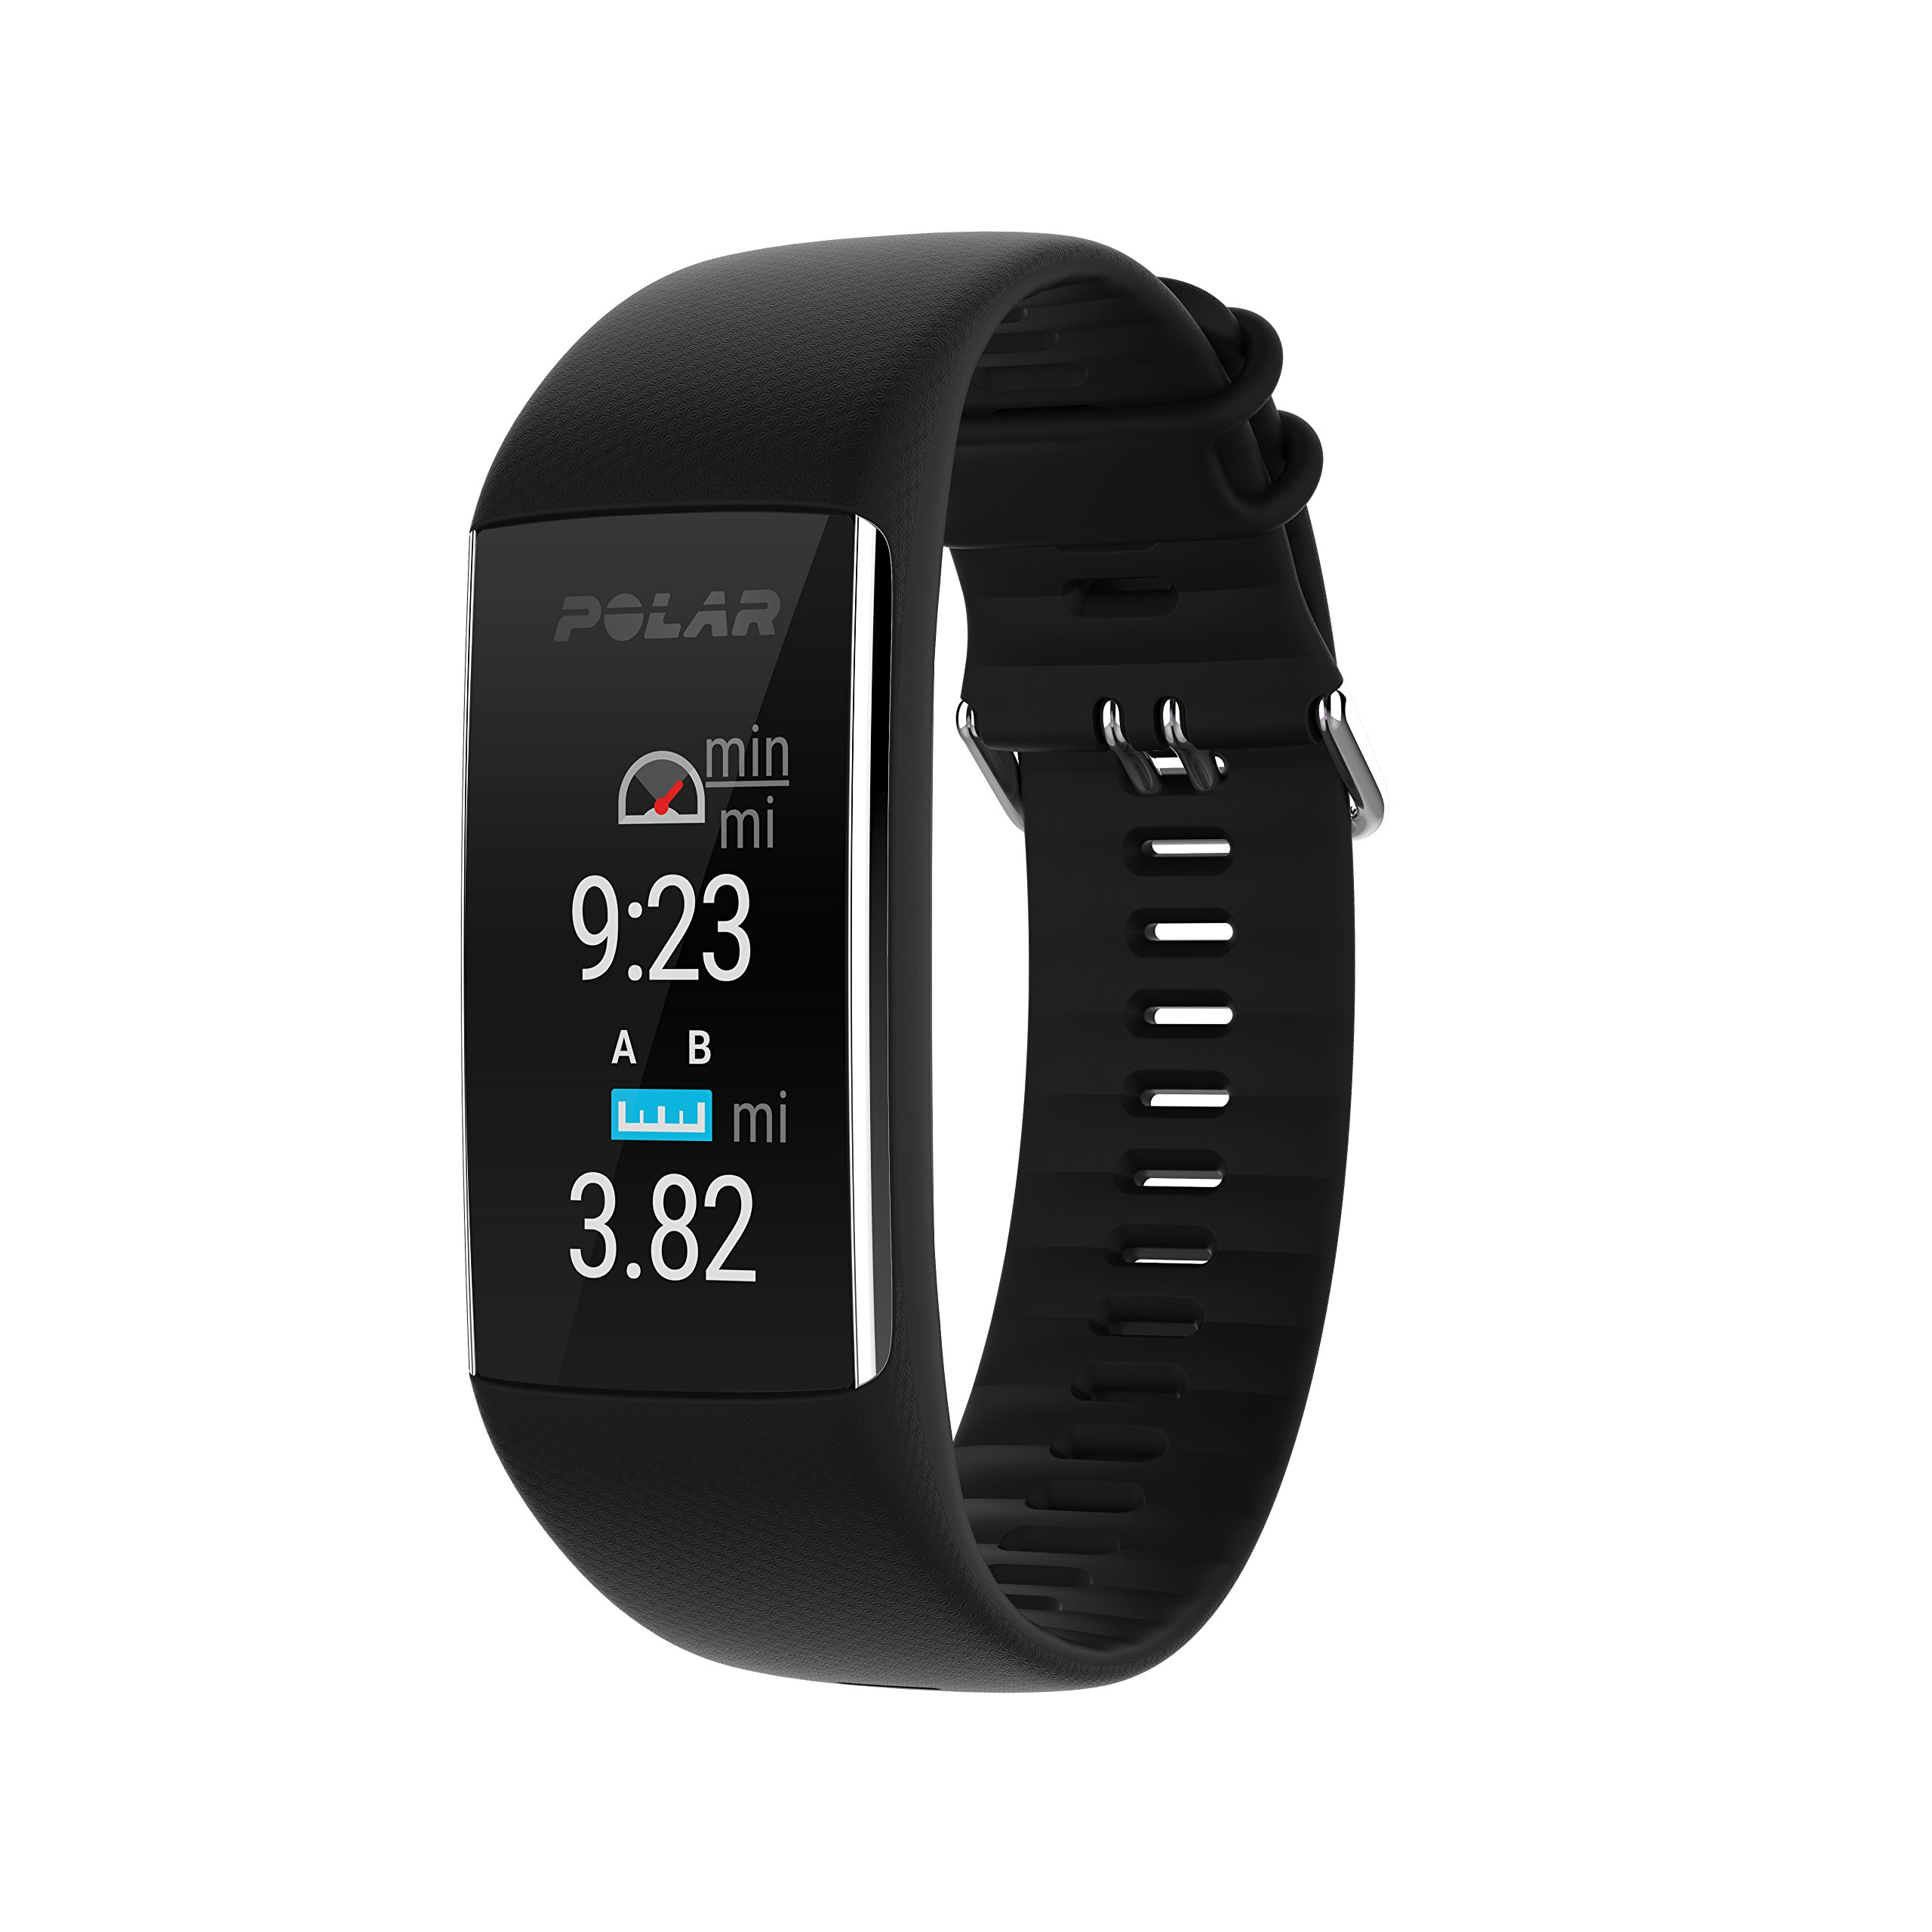 Polar A370 (Black, Medium/Large) GPS Fitness Band BUNDLE with Extra Silicone Band (White) & PlayBetter Portable Power Bank (2200mAh) | On-Wrist Heart Rate, 24/7 Activity Tracker by PlayBetter (Image #4)